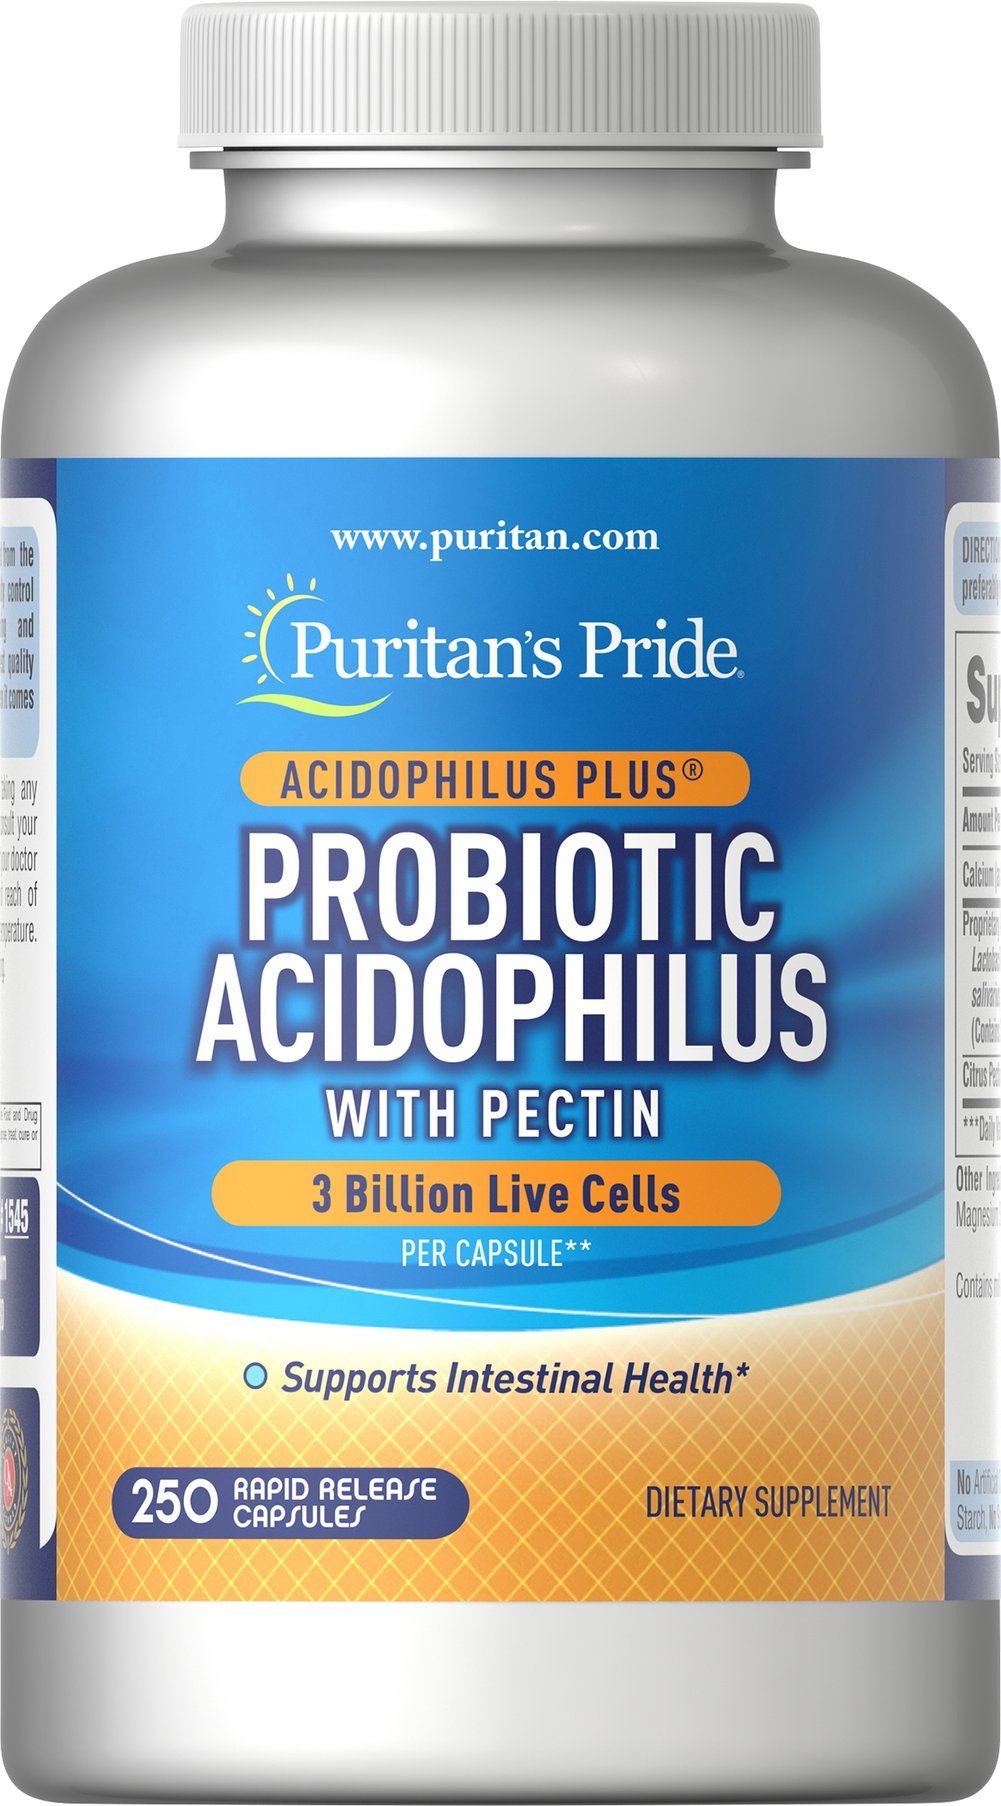 Probiotic Acidophilus with Pectin <p><b>Supports intestinal health for the optimal absorption of nutrients**</b></p><p>Guaranteed to provide three billion live cells per capsule at the time of manufacture.</p> <p>Includes Acidophilus to support favorable environment for nutrients.</p><p>Encourages intestinal microflora balance**<p>Promotes healthy functioning of intestinal system.**</p> 250 Capsules 3 billion $36.99